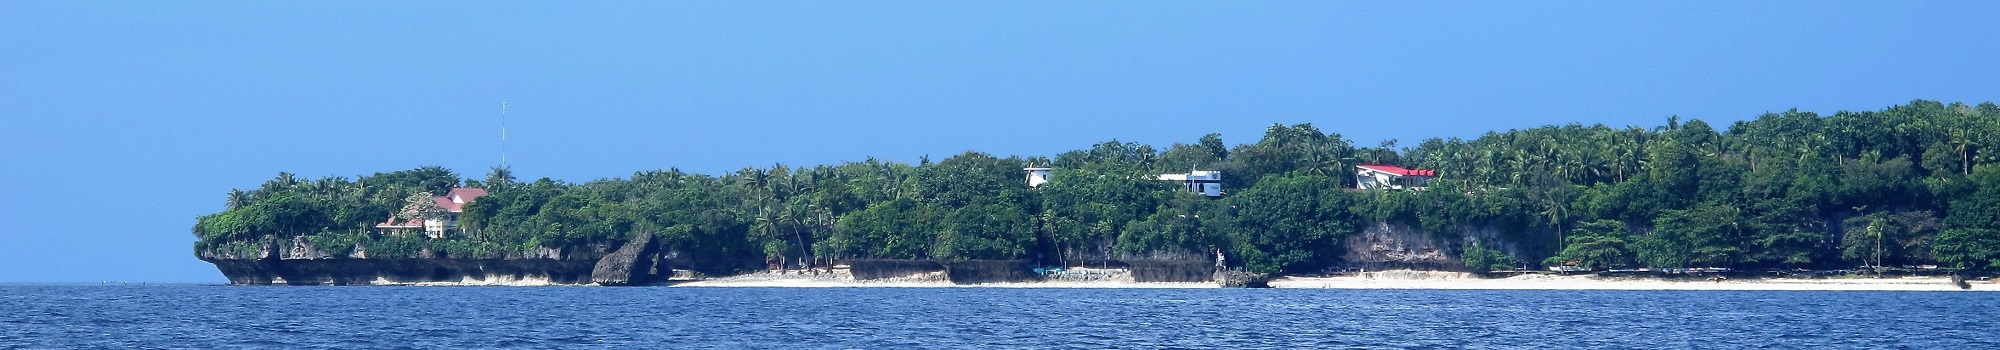 View of Padre Burgos Castle Resort from the sea